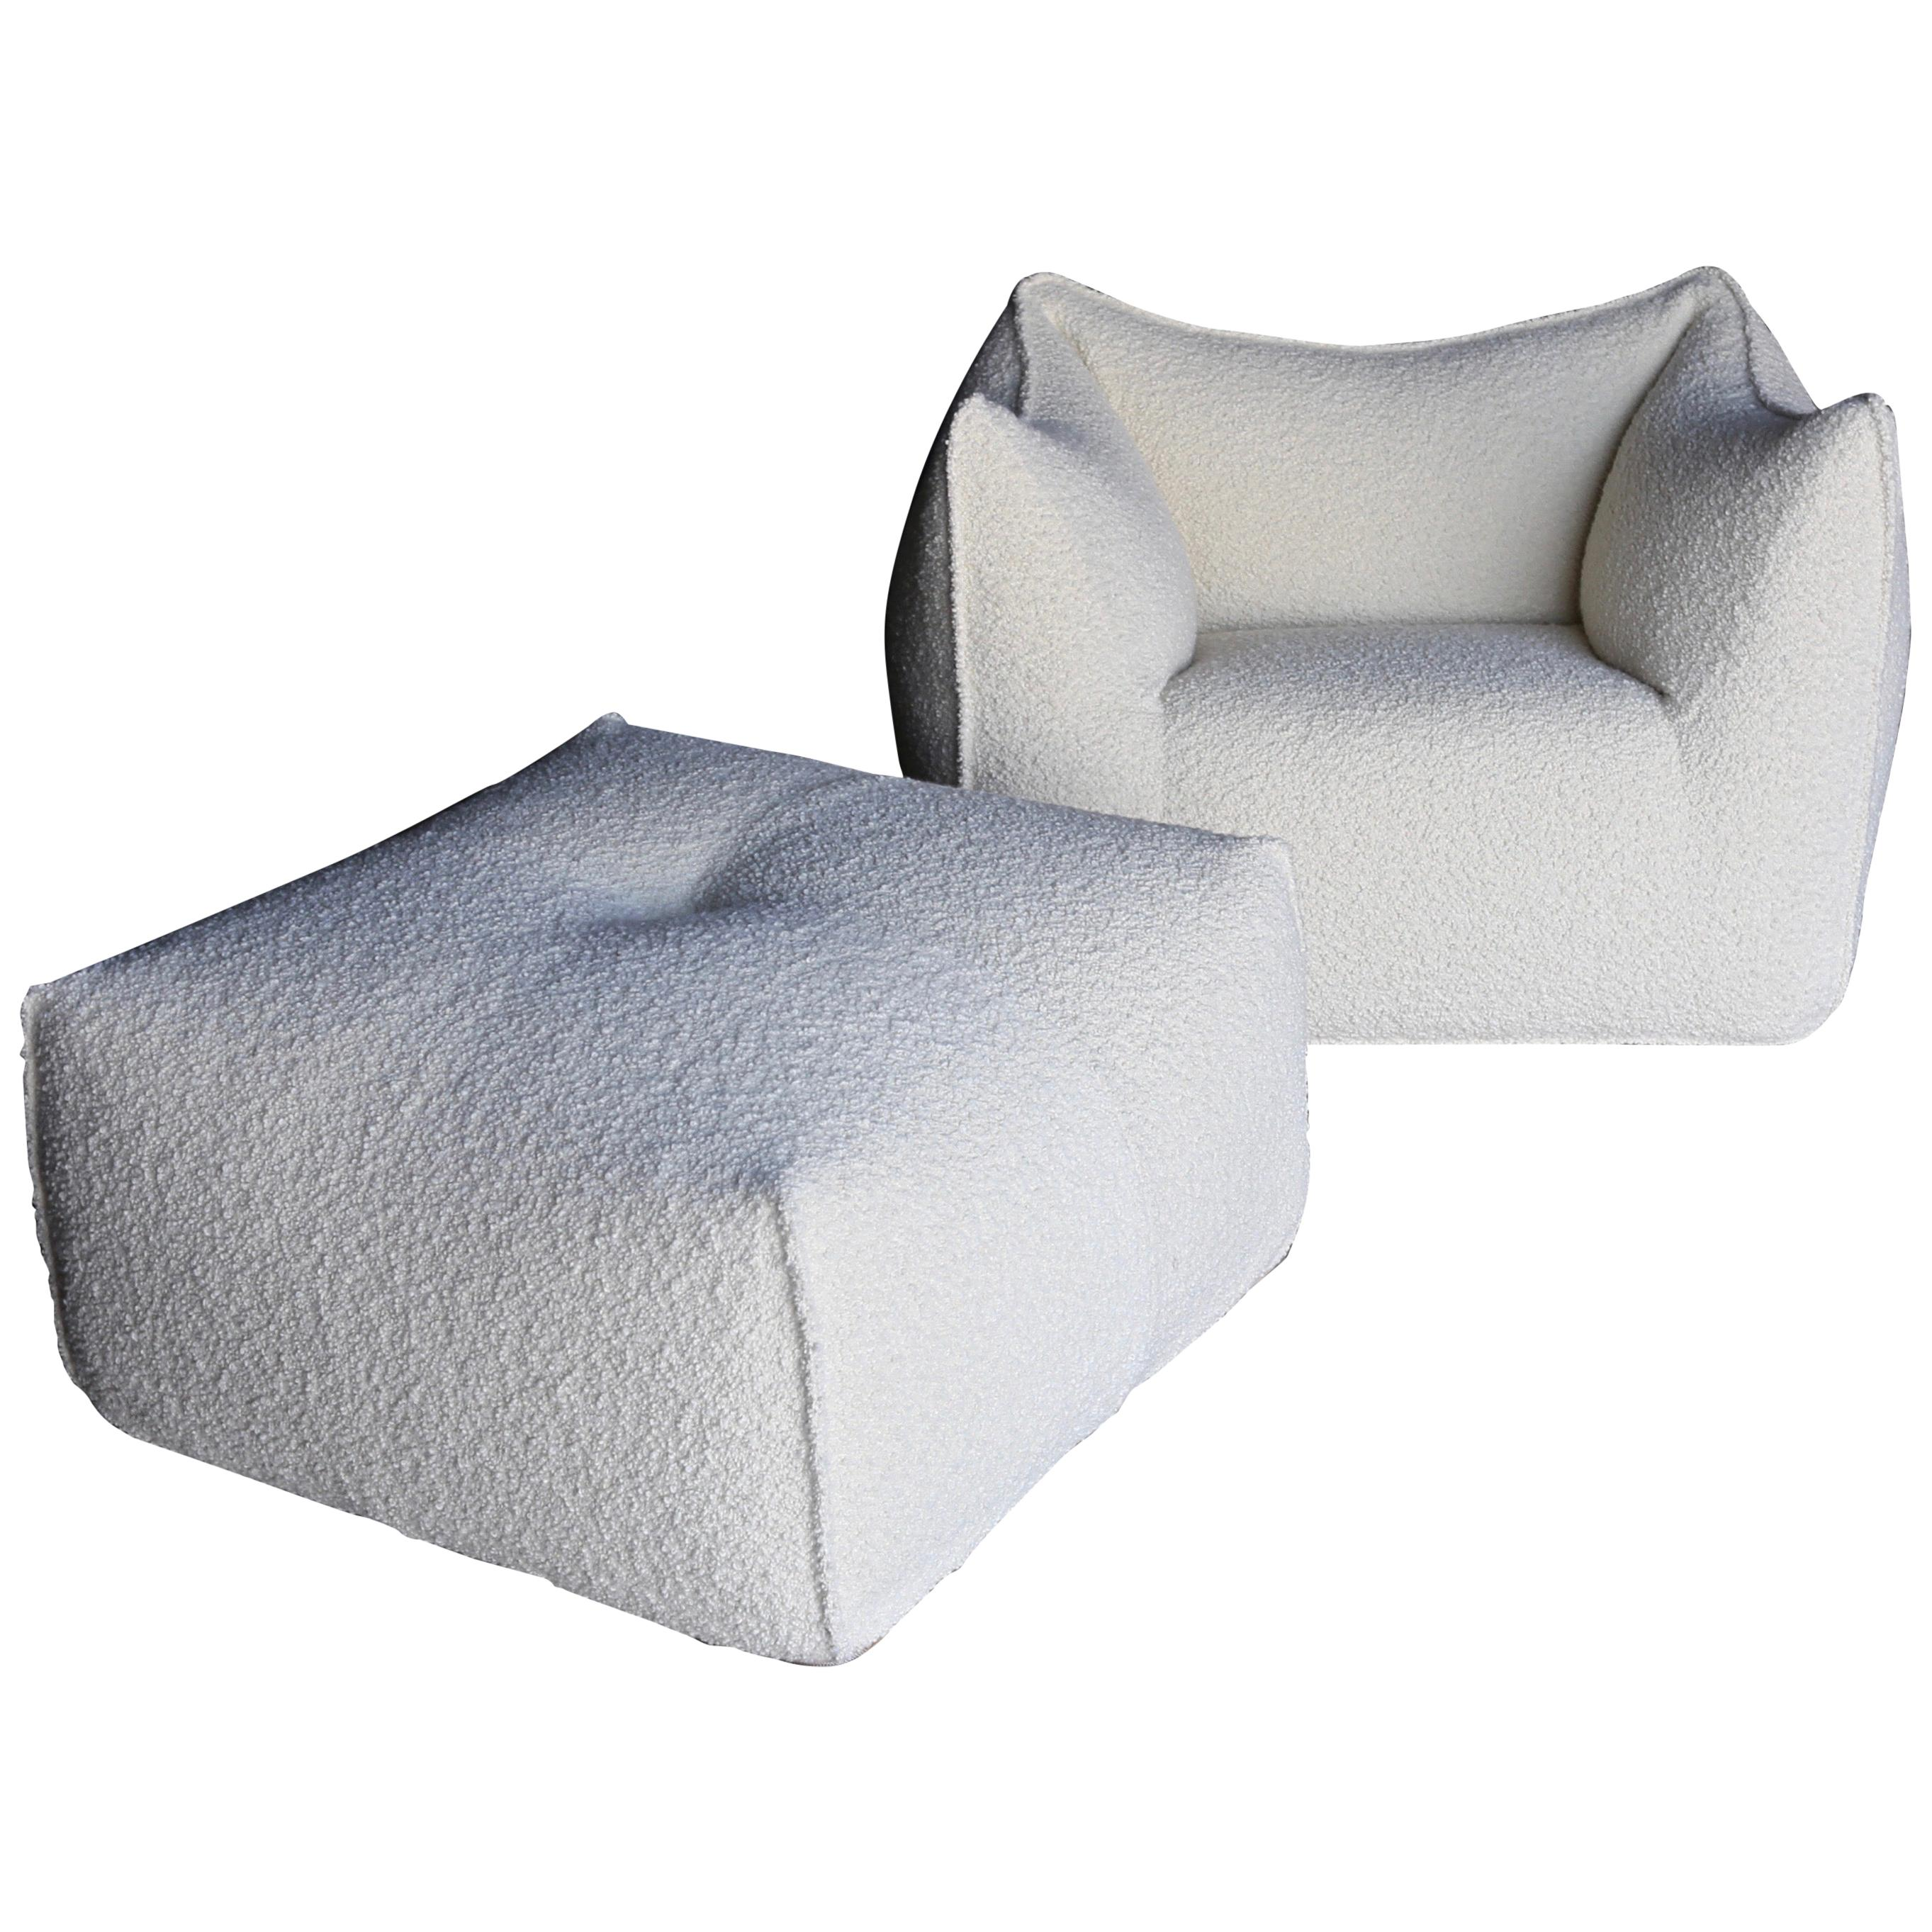 "Mario Bellini ""Le Bambole"" Lounge Chair & Ottoman for B&B Italia"